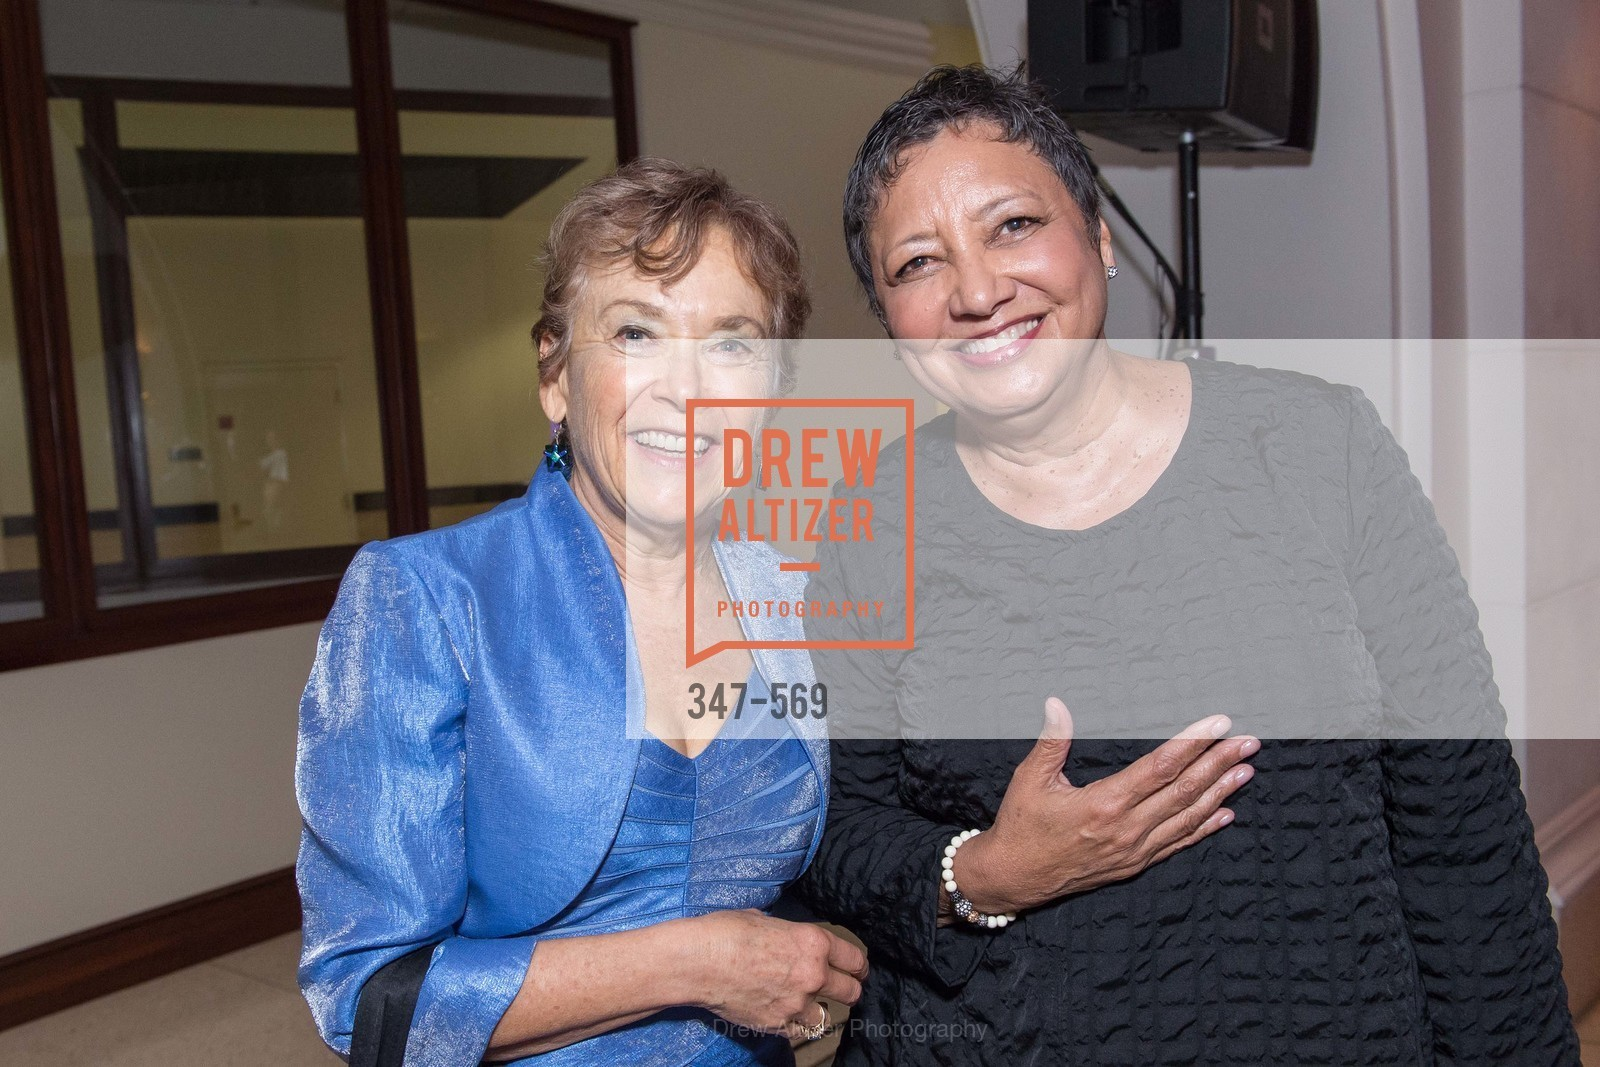 Sheila Jordan, Victoria Jones, CHABOT Science Center STARLIGHT GALA, US, September 20th, 2014,Drew Altizer, Drew Altizer Photography, full-service agency, private events, San Francisco photographer, photographer california